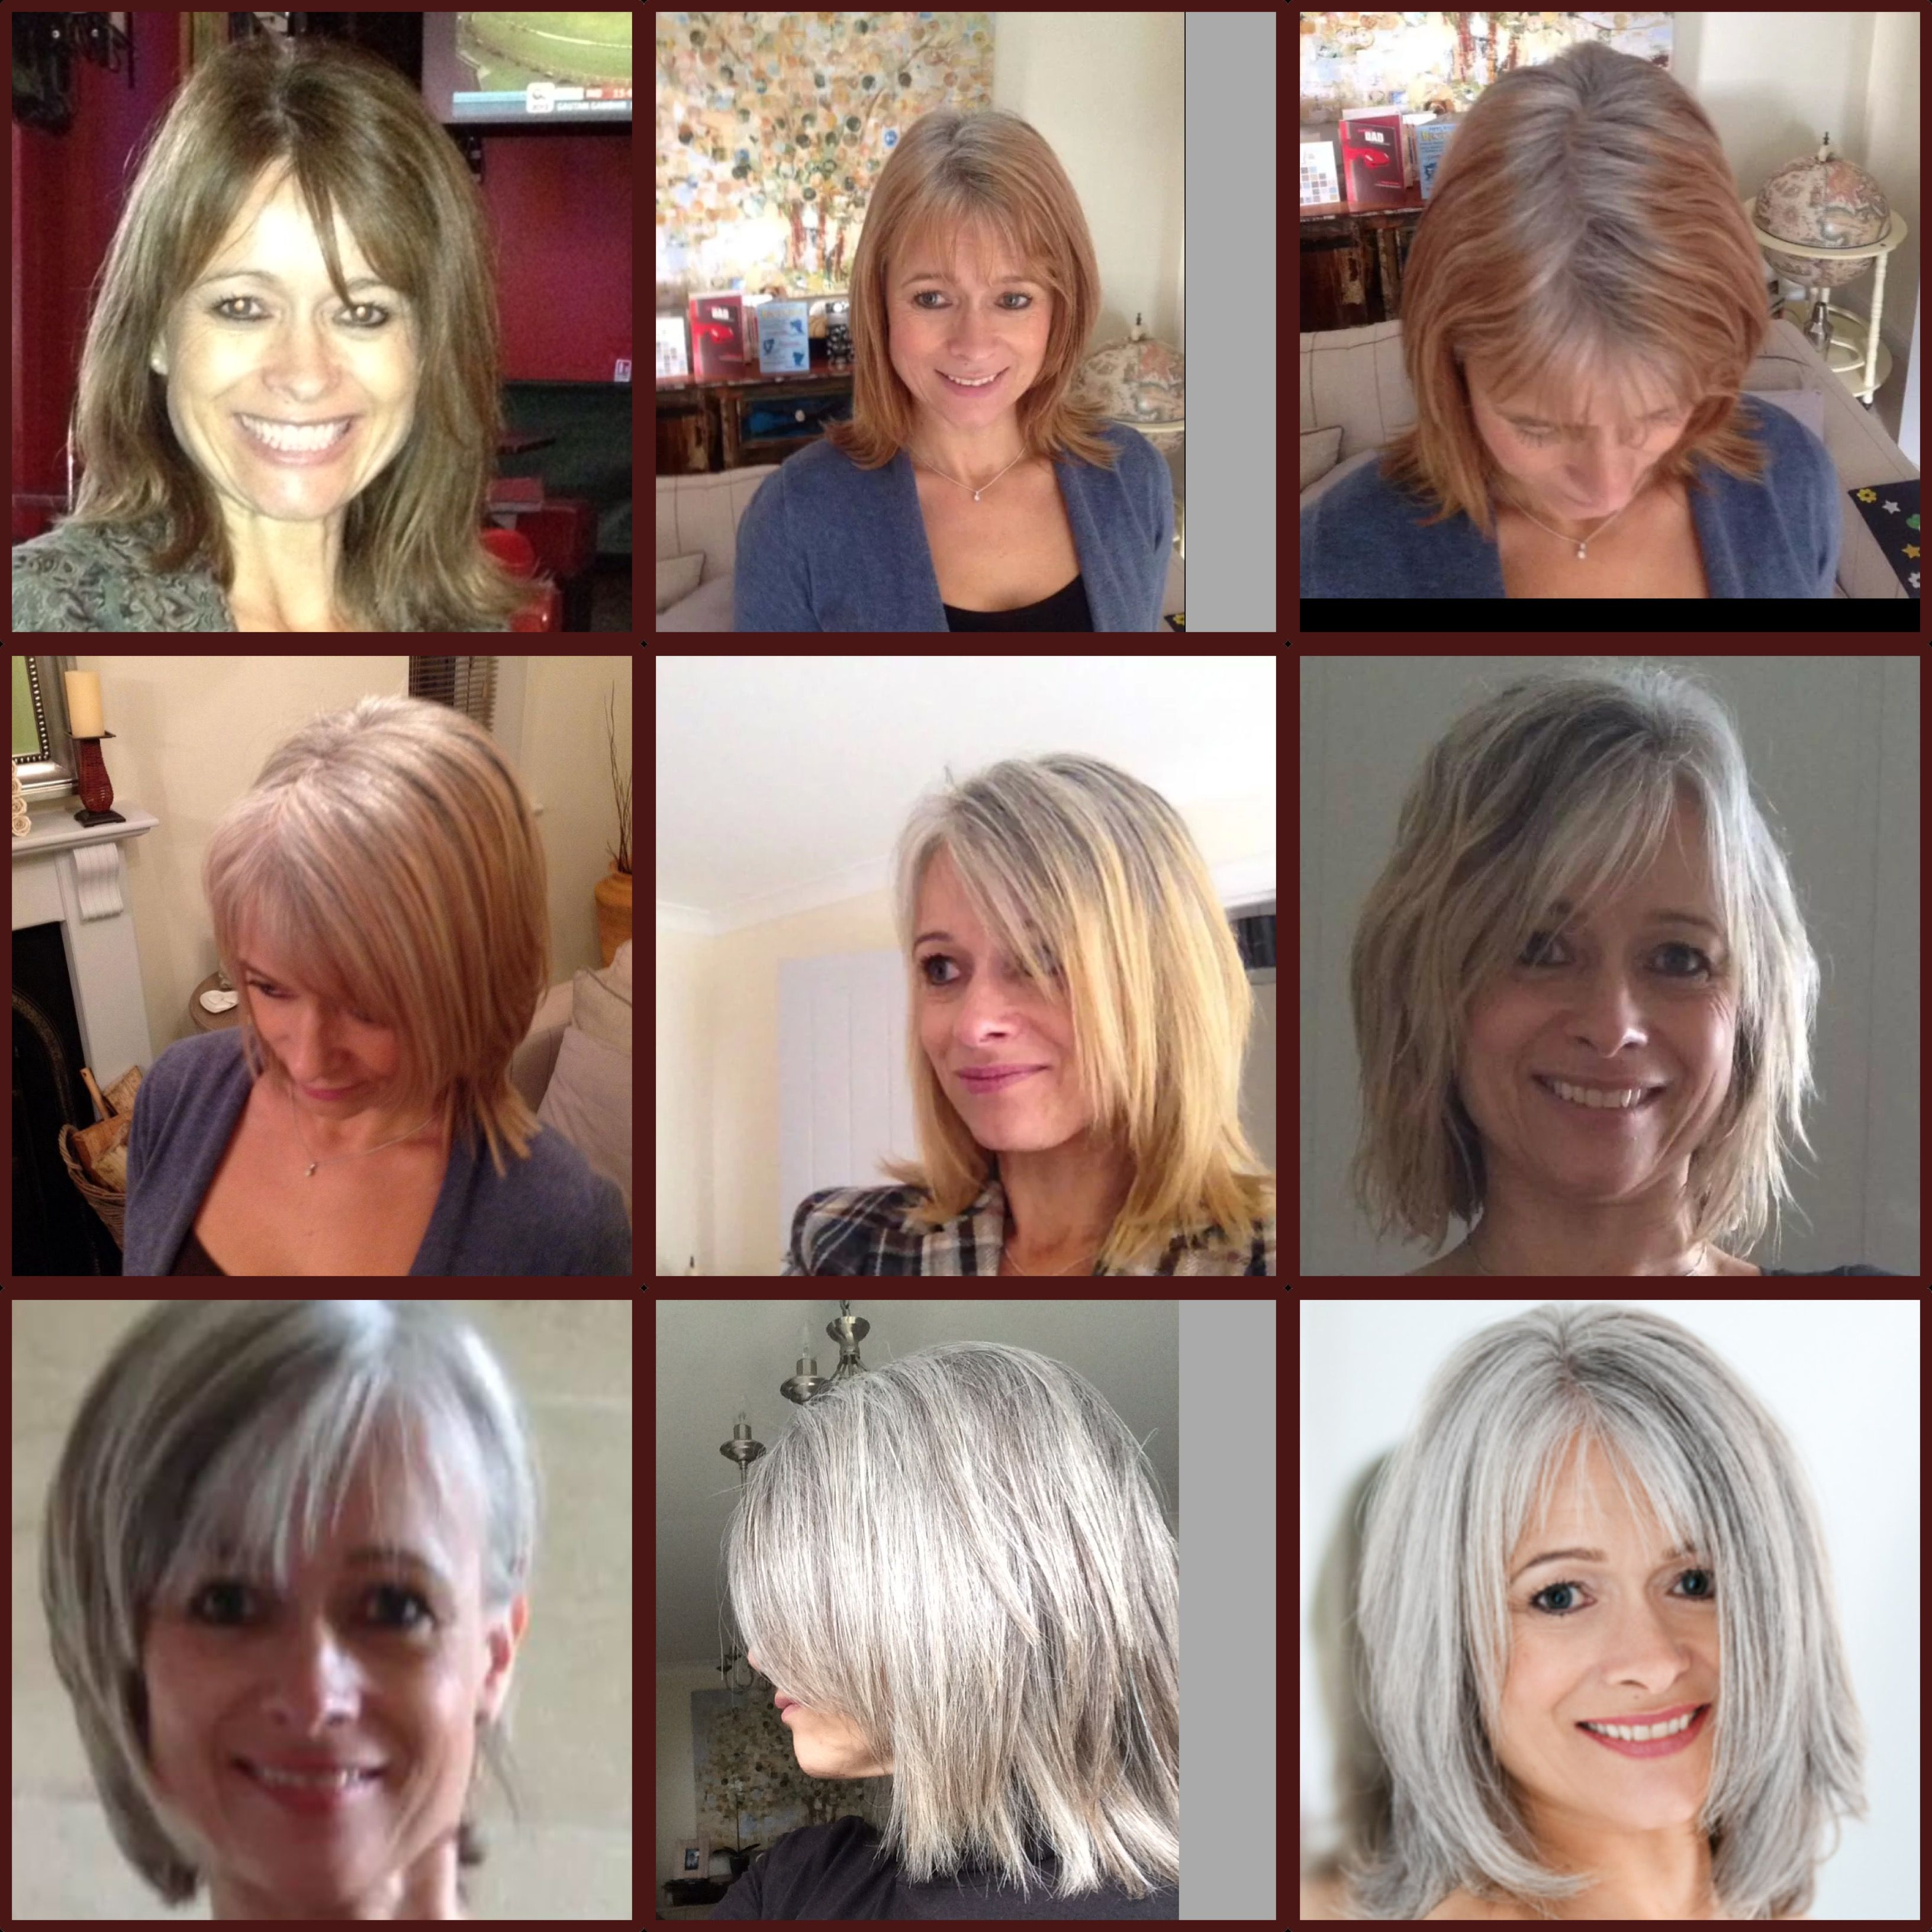 11 Month Transition To Grey Transition To Gray Hair Gray Hair Growing Out Hair Highlights